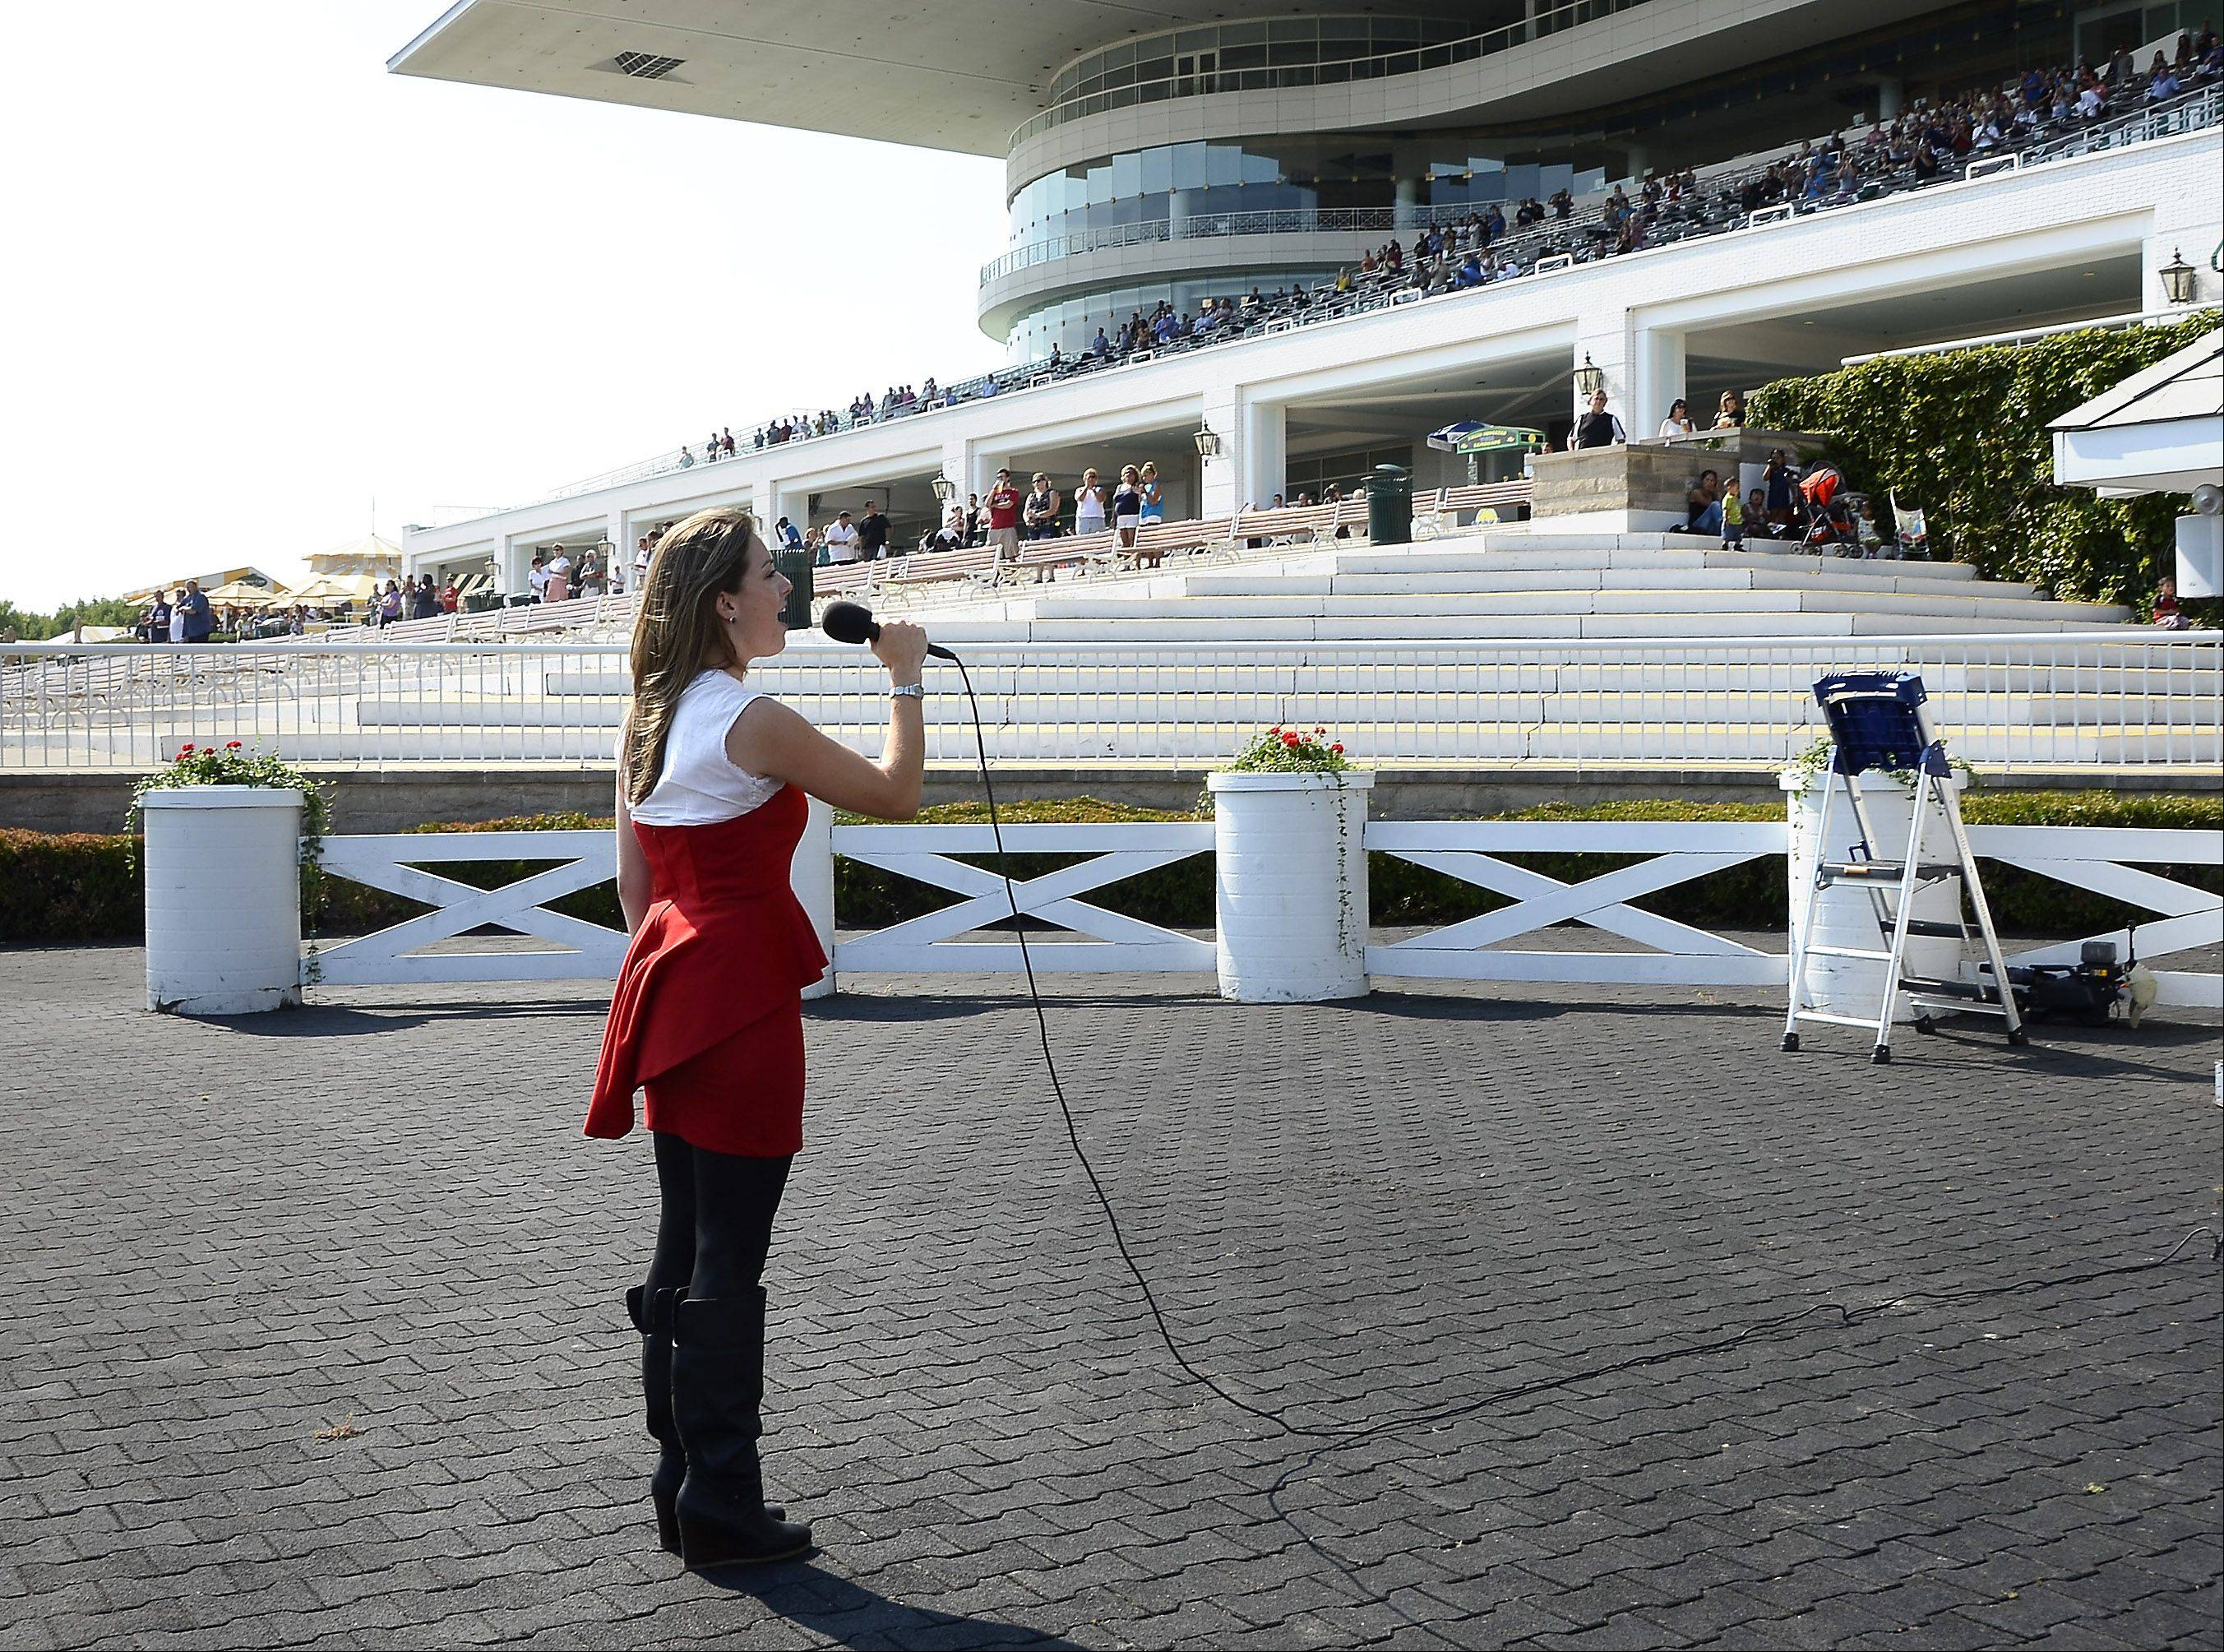 Prospect High School graduate Jean Laurenz is now in her fifth summer as Arlington Park's bugler. The 25-year-old also sings the national anthem there and is entering her final year of a master's in music program at Yale University.